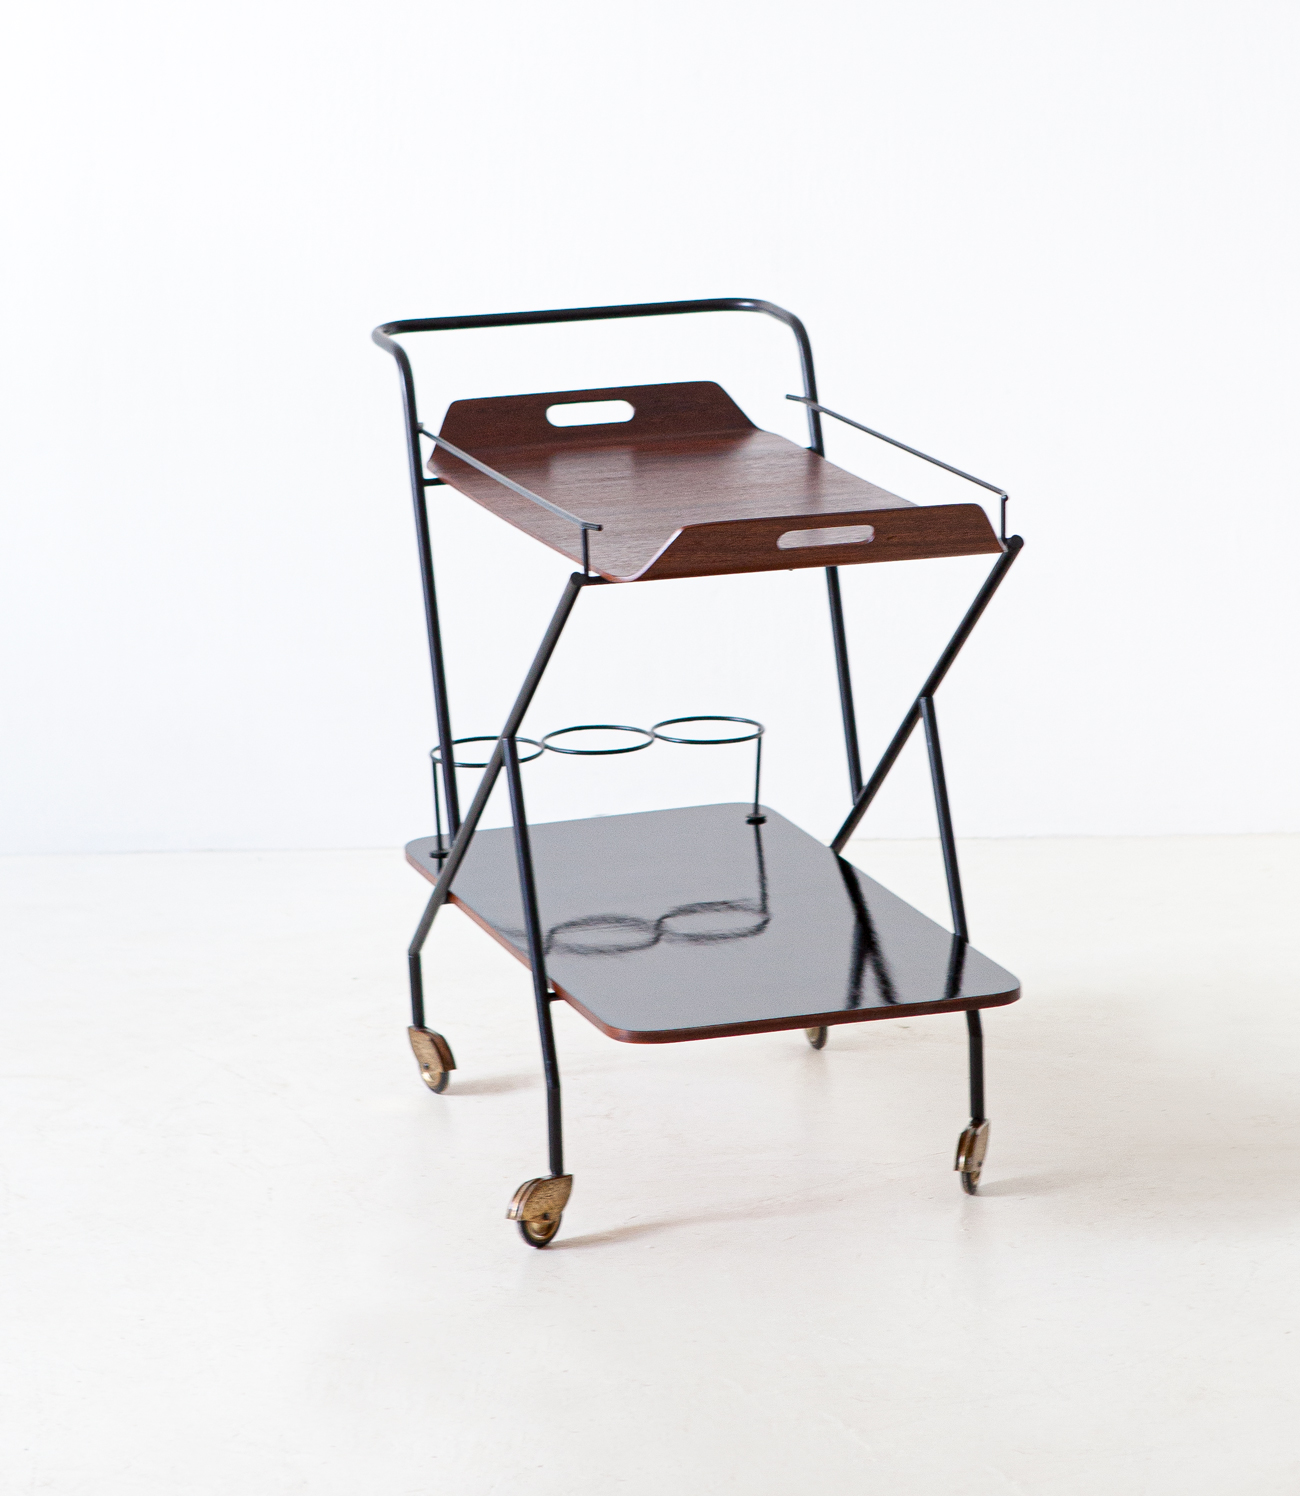 1950s-italian-design-bar-cart-2-of99